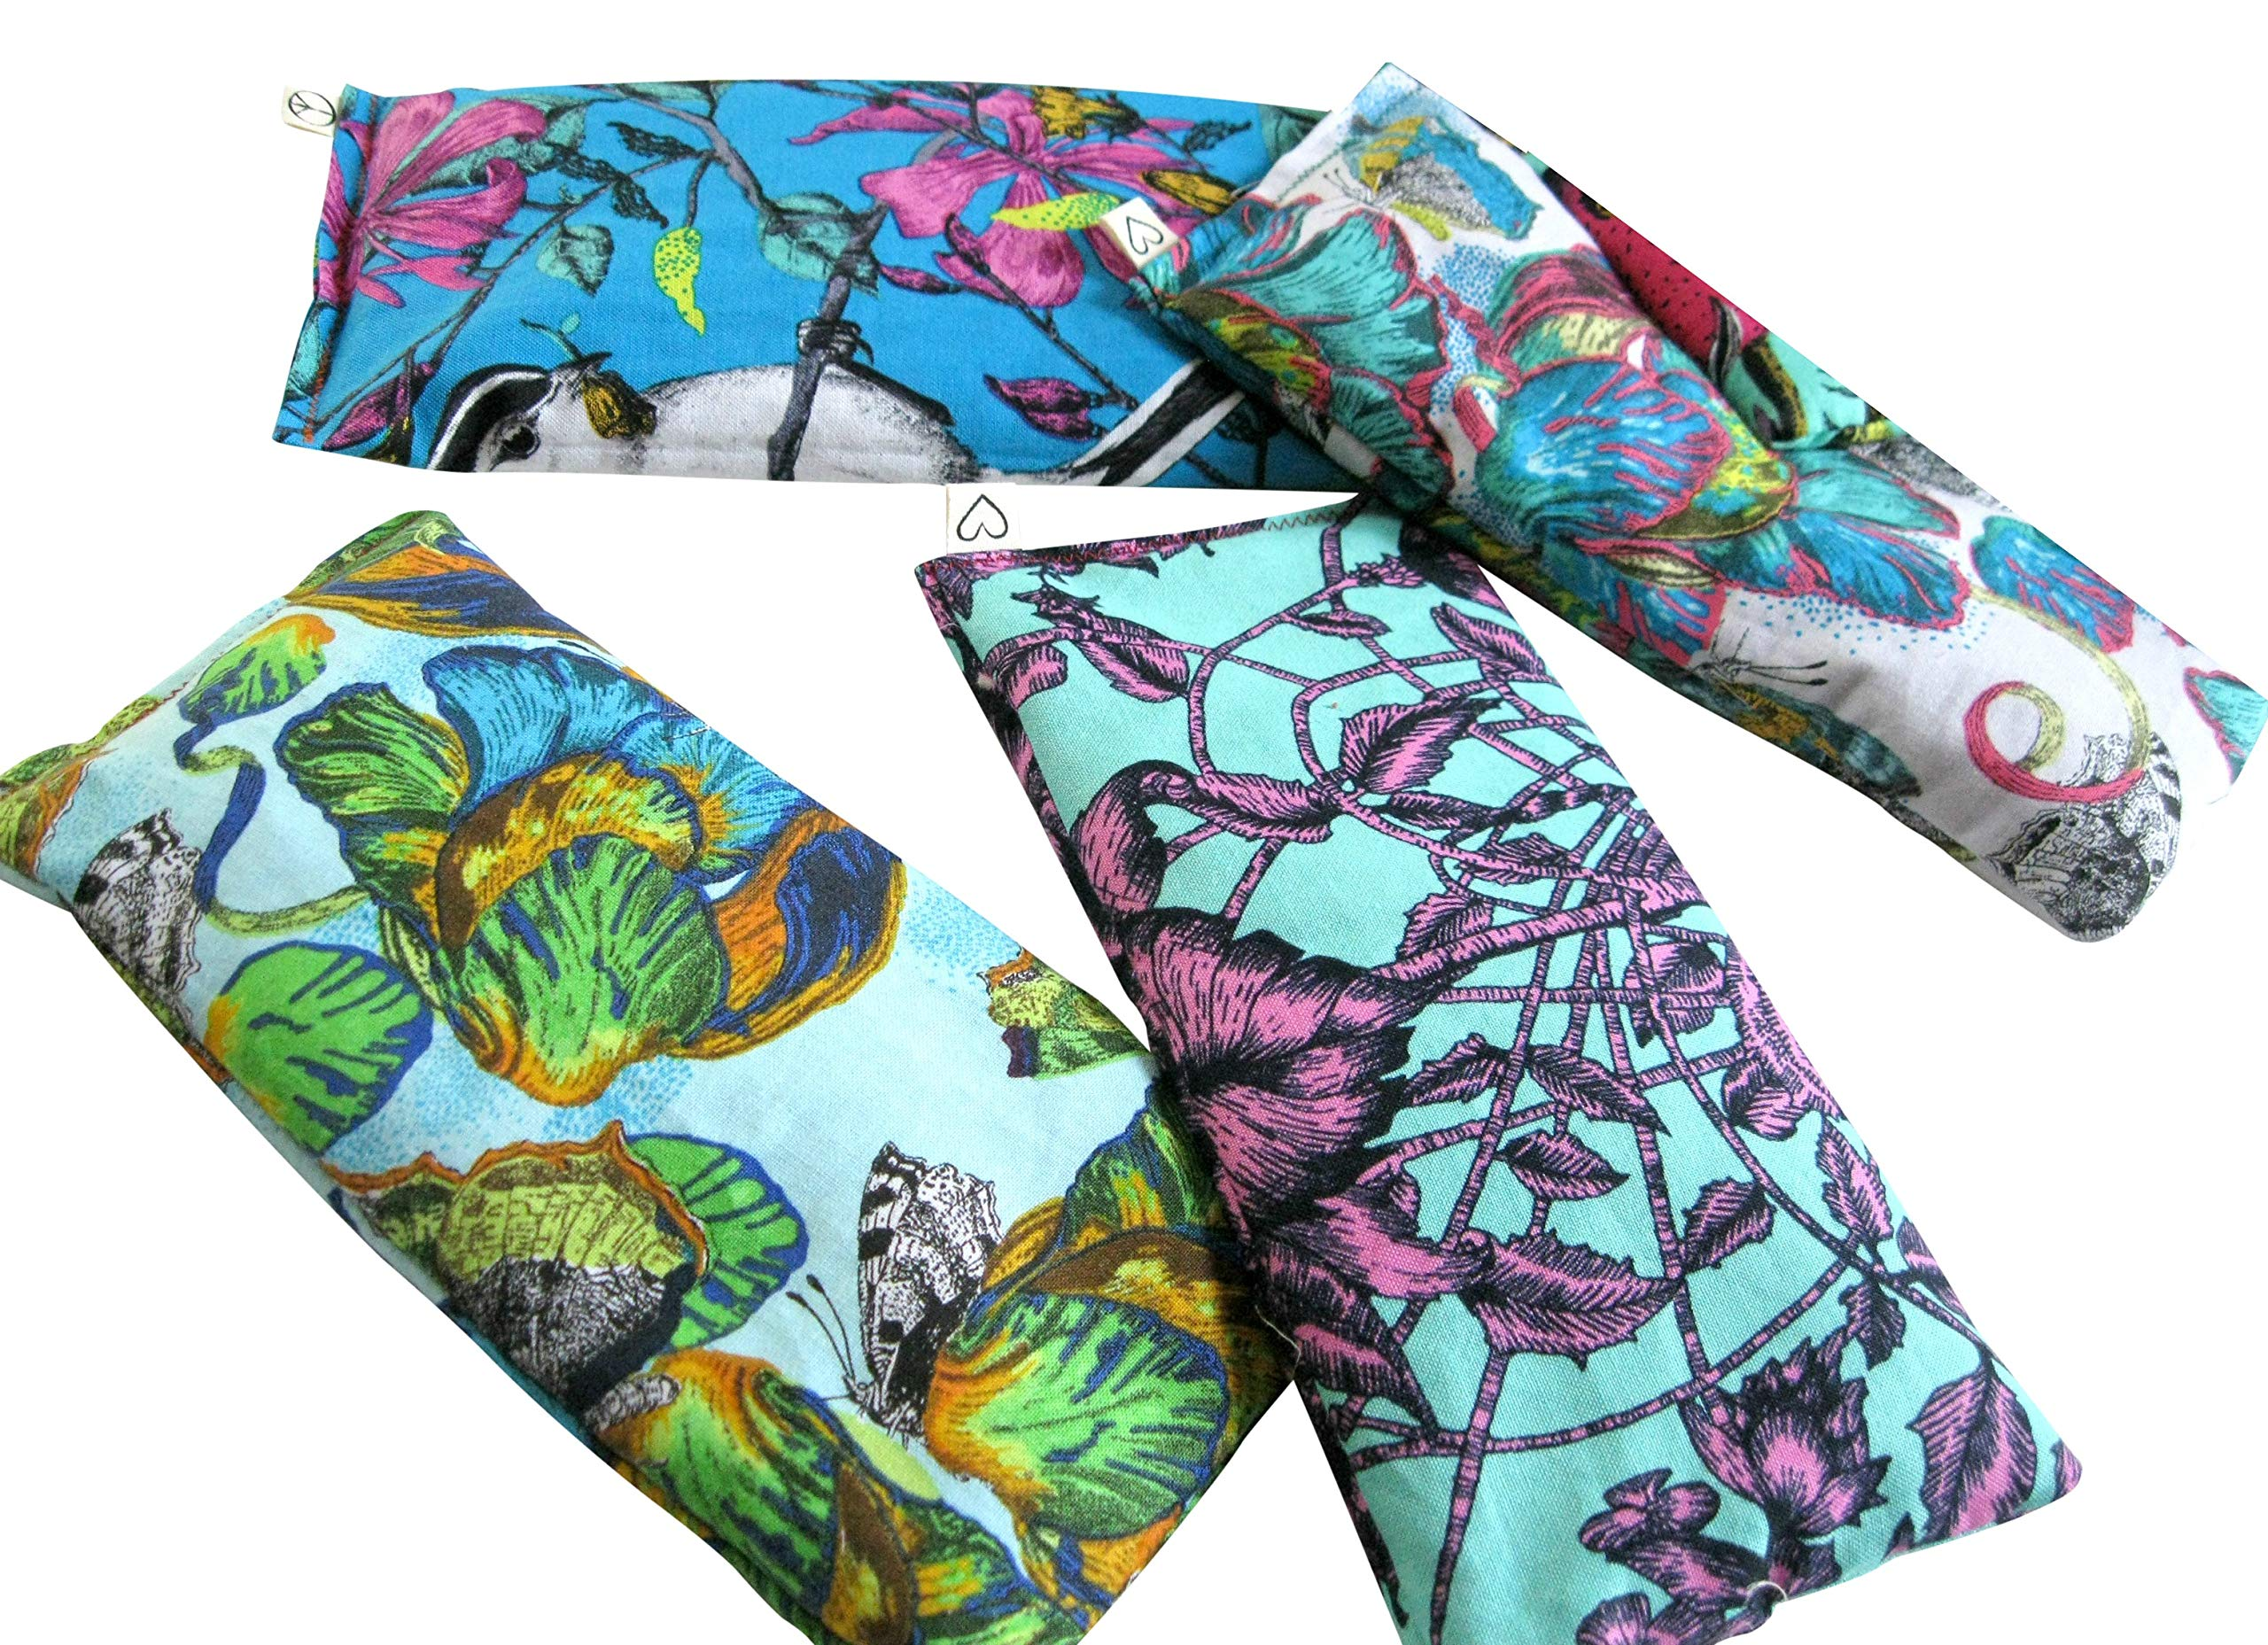 Scented Eye Pillows - Pack of (4) - Soft Cotton 4 x 8.5 - Lavender Flax Seed - Relax Soothe - yoga - tropical flowers palm leaves blue green pink fruit bird